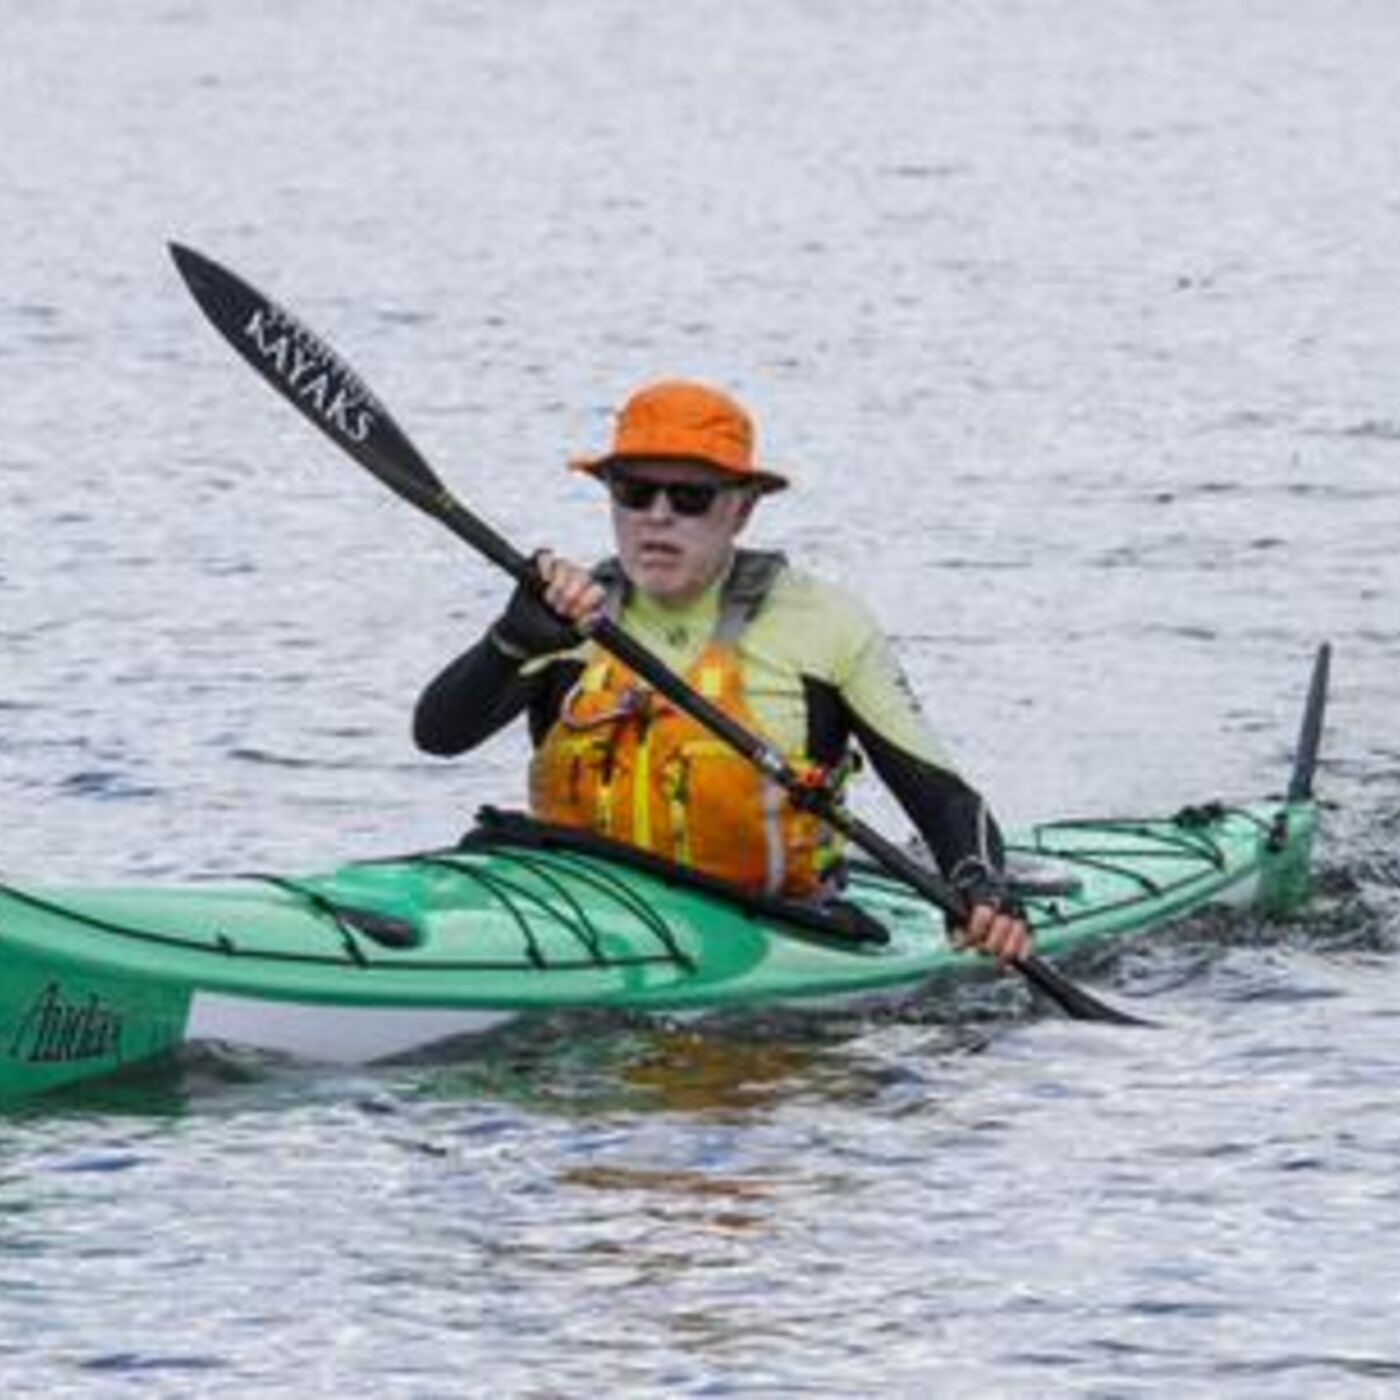 Episode 7 - Introducing Our New Fast Sea Kayak, the Audax Azure